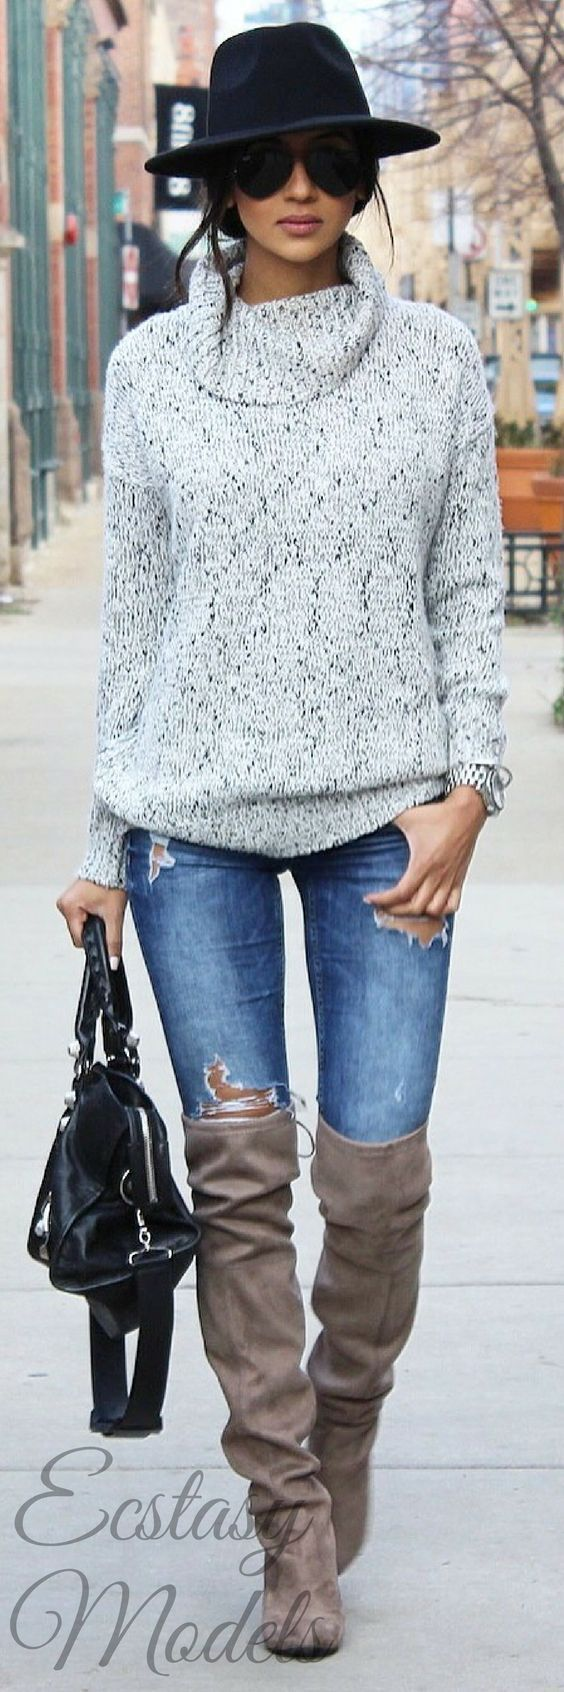 123f0be9 Fashionable Fall Outfits To Copy From NYC's Stylish Women | Fall ...